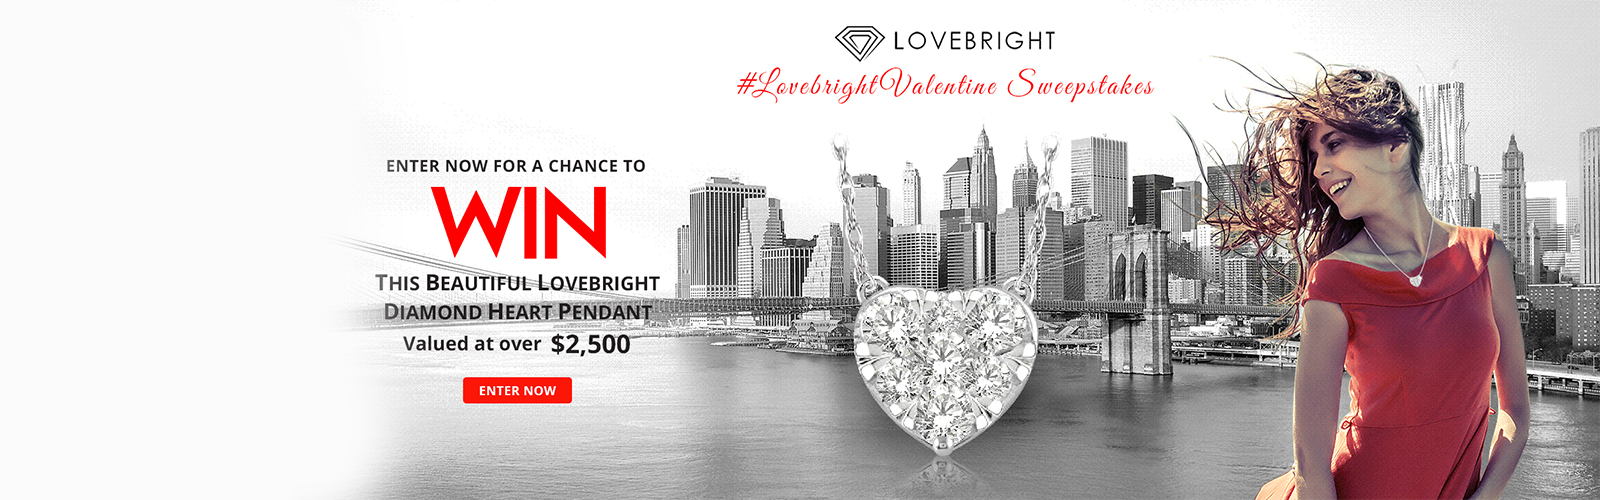 Lovebright Sweepstakes